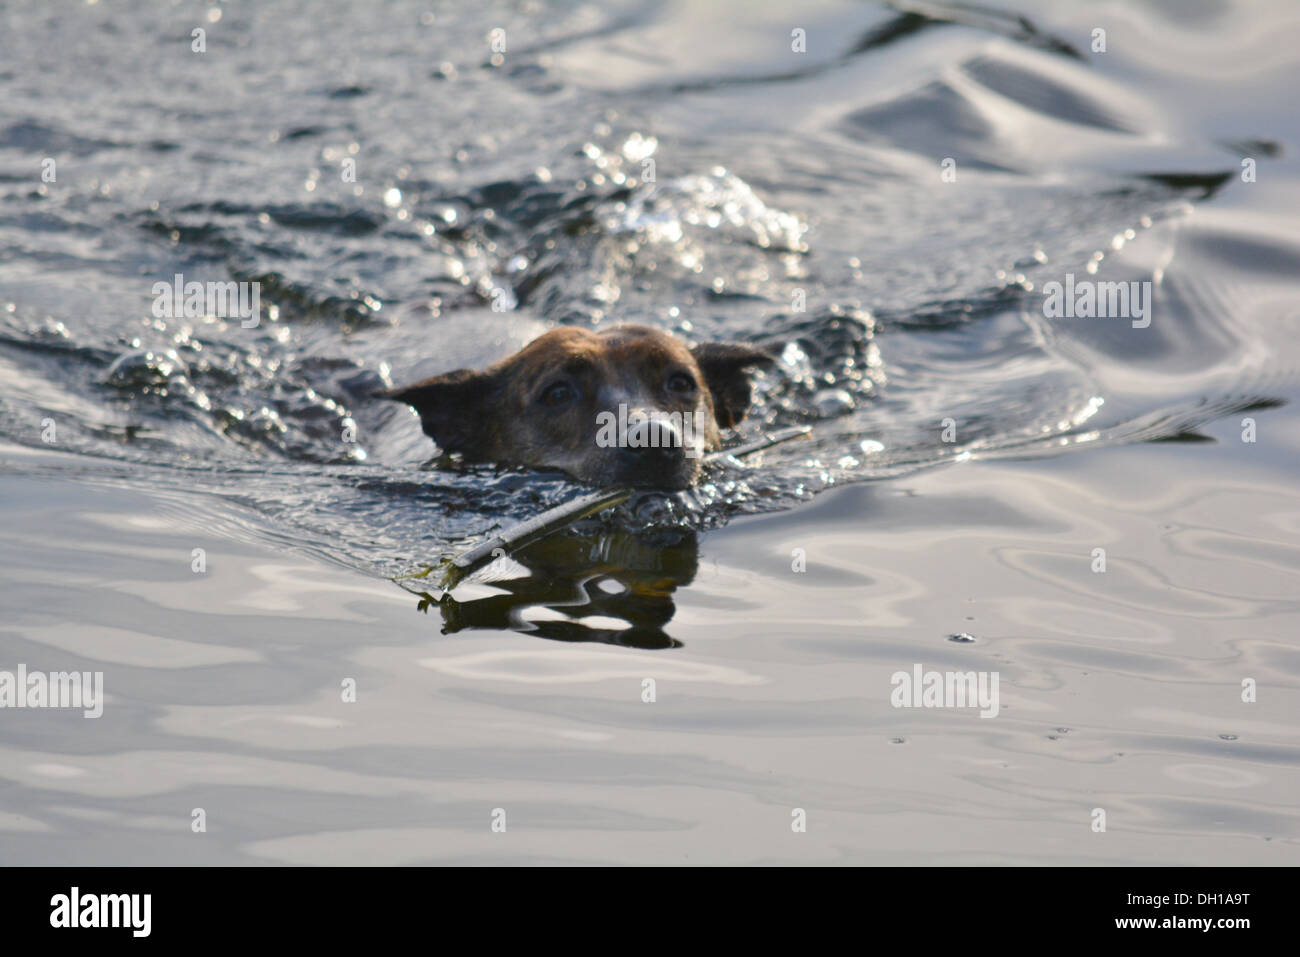 Staffordshire Bull Terrier swimming in the water with a stick in its mouth. - Stock Image